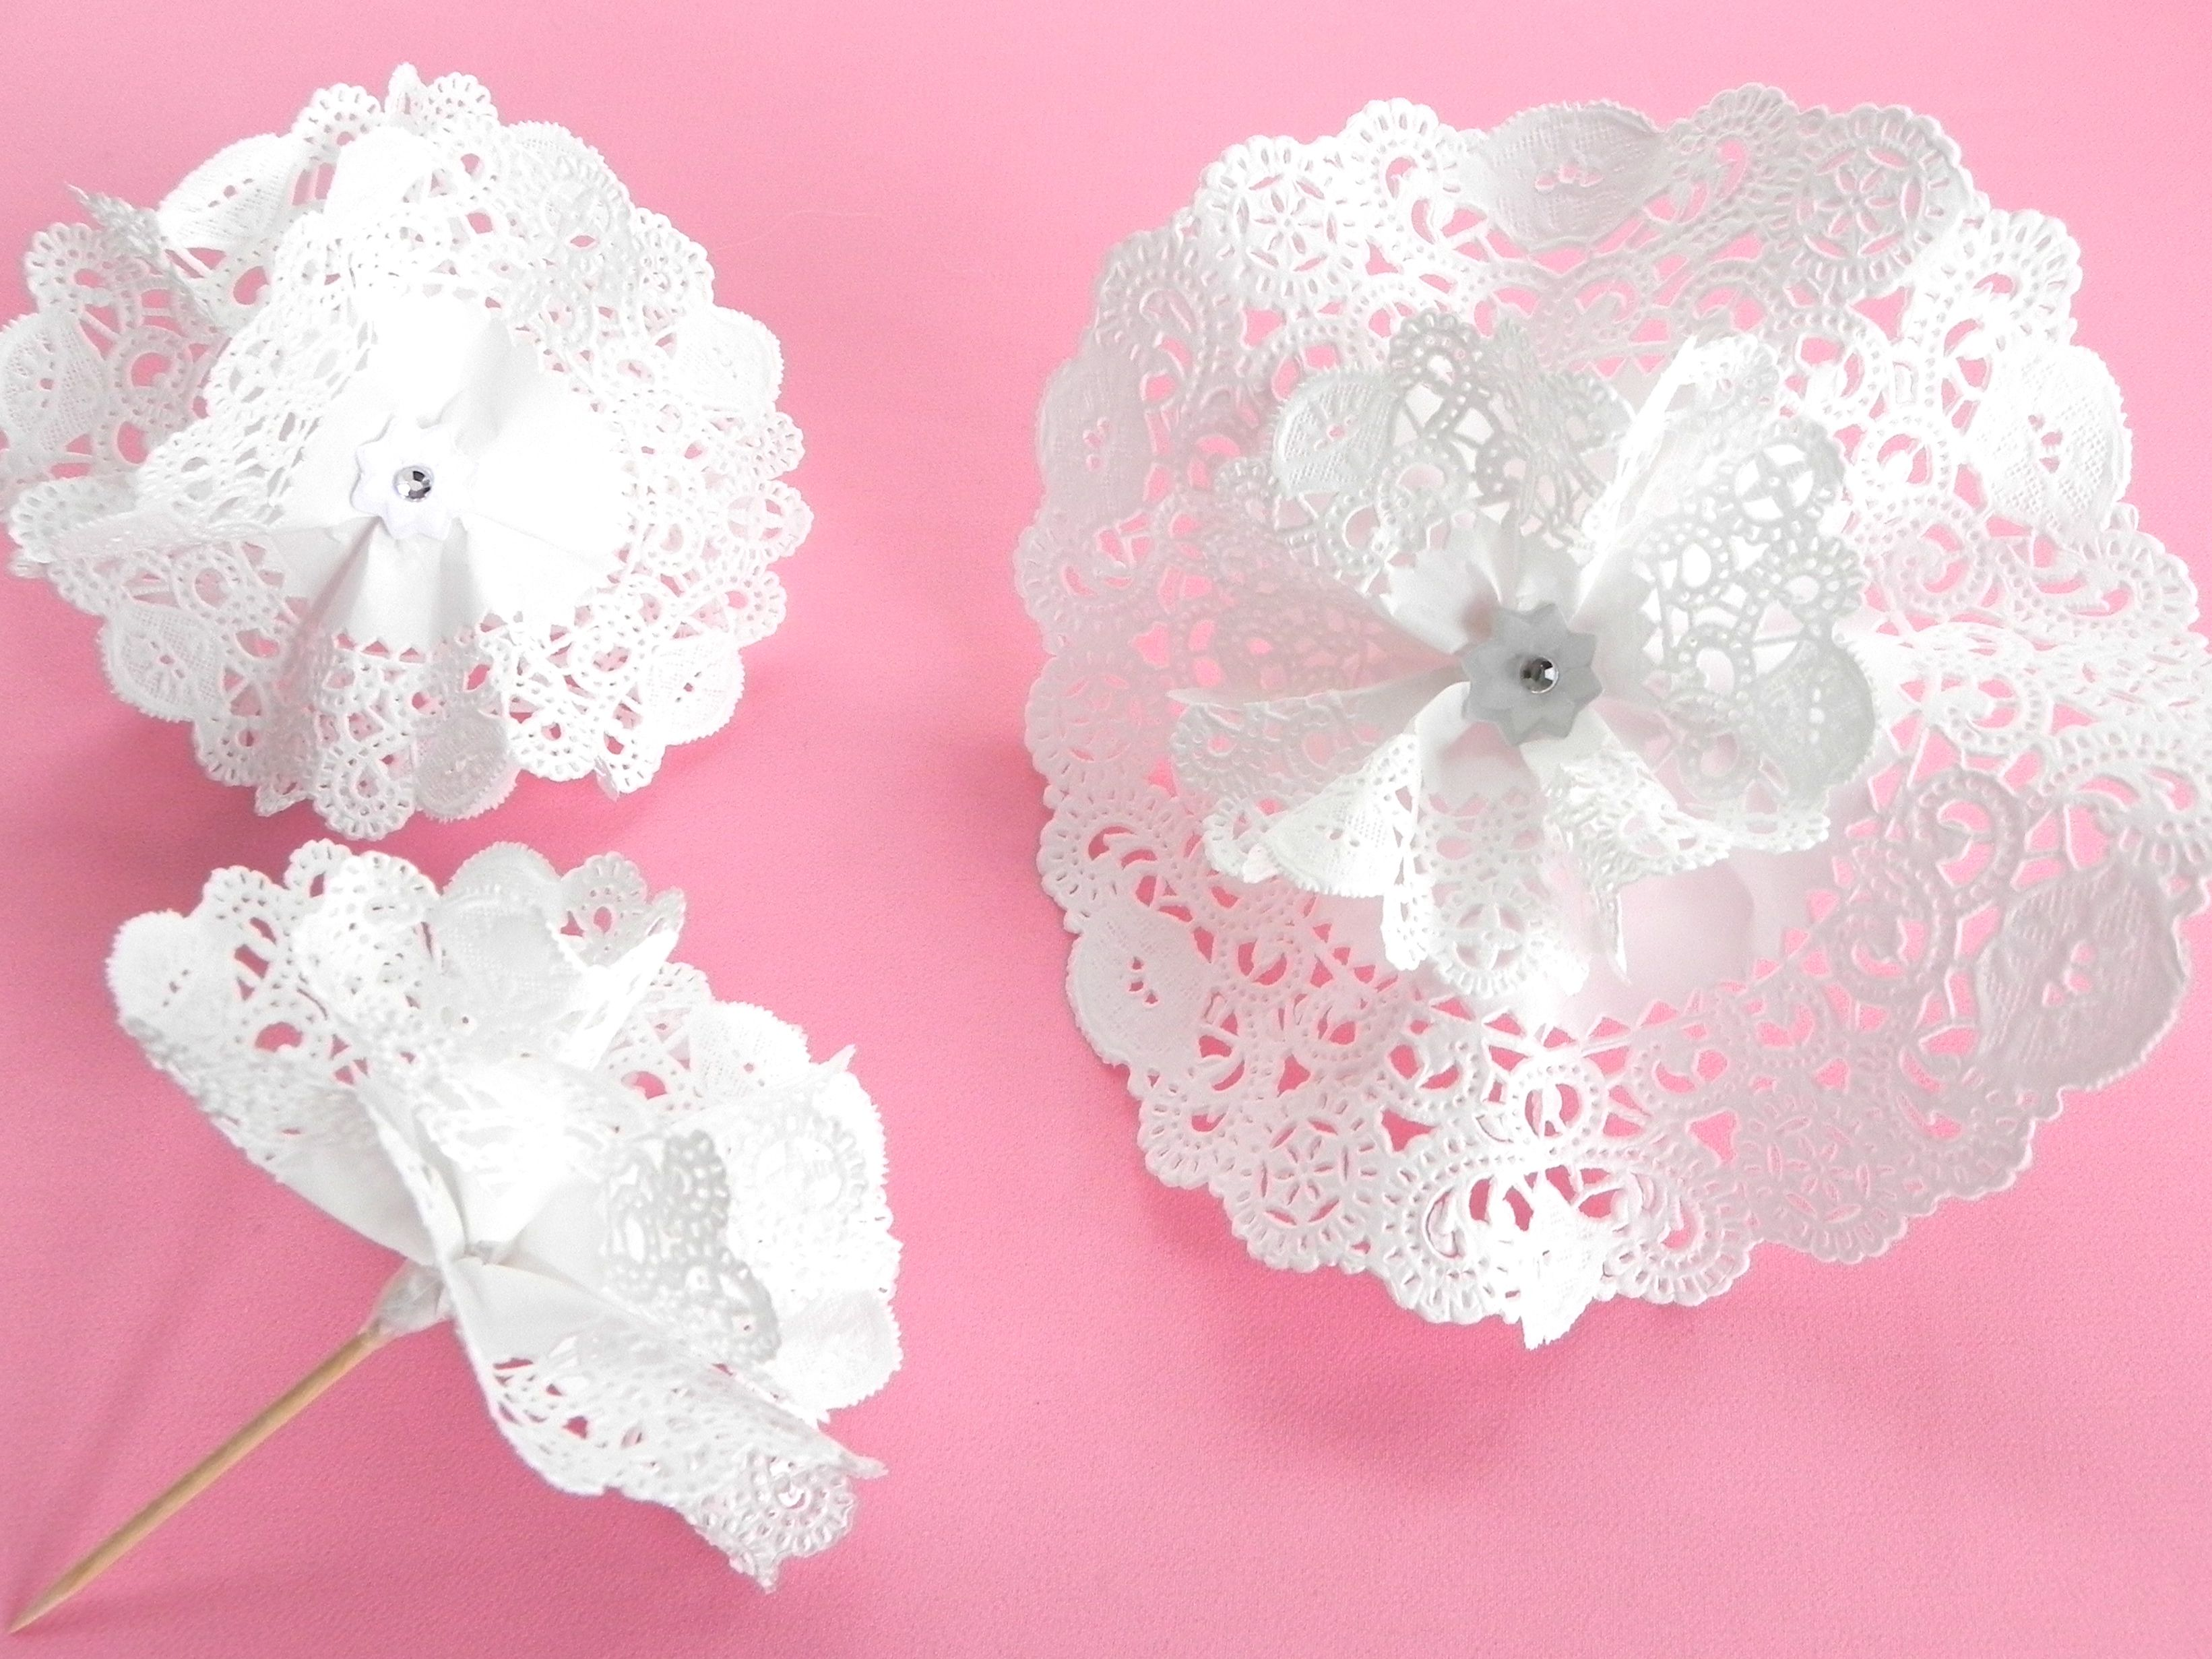 Diy Paper Lace Flower Cakefood Picks Or Table Decor Lacey